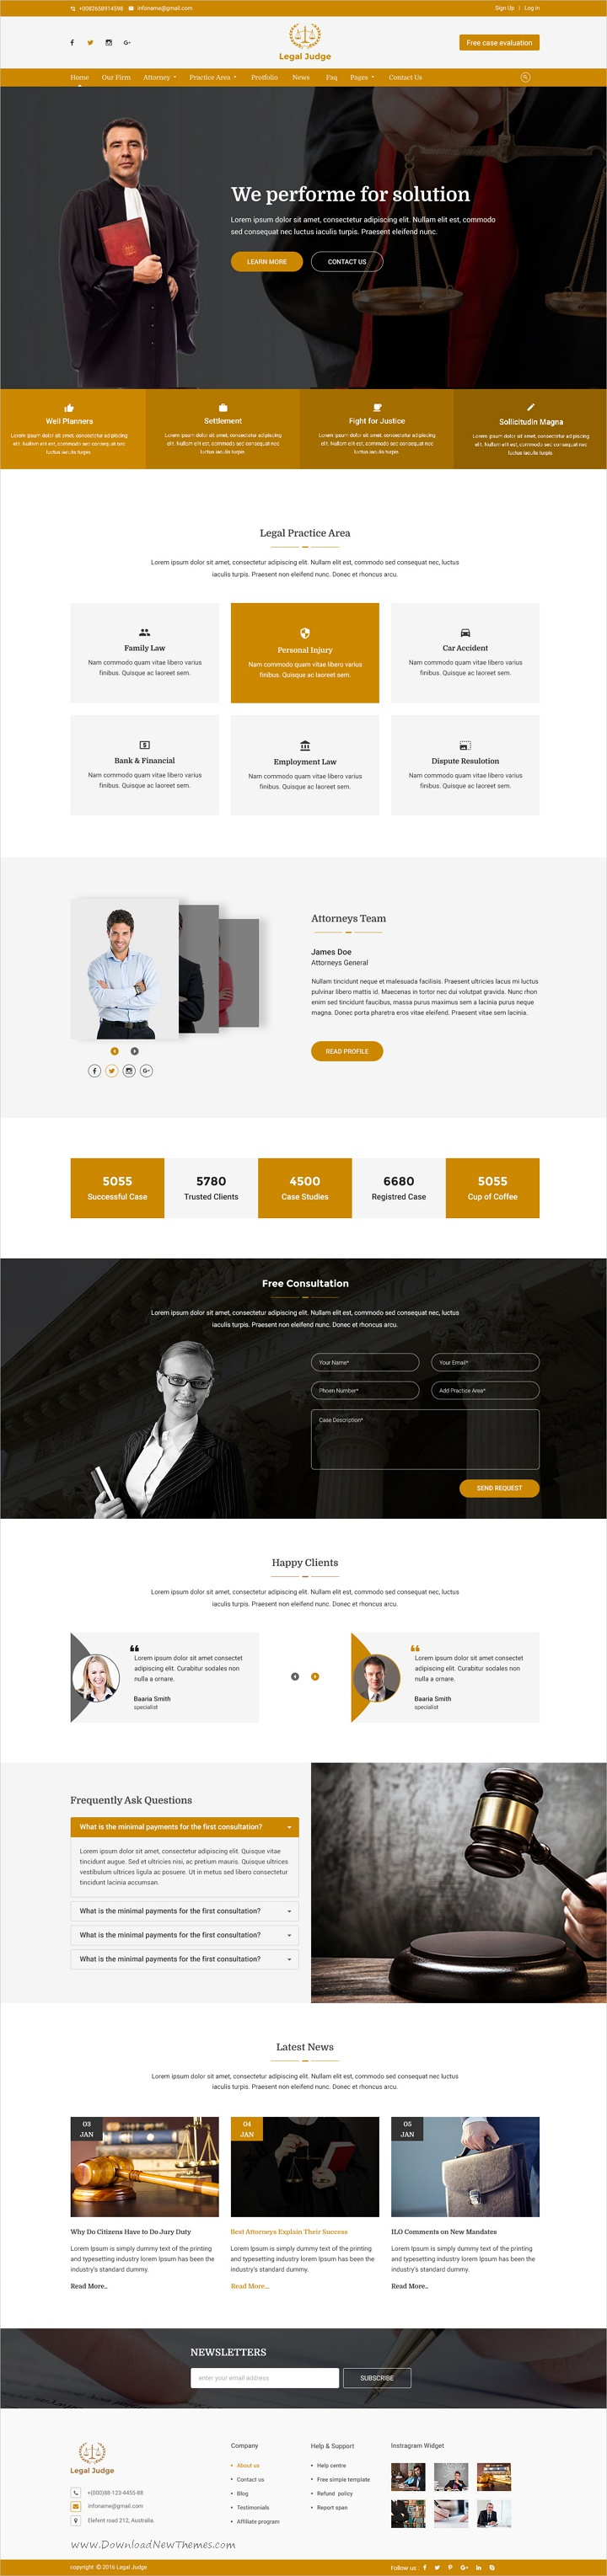 Legal judge is clean and minimalist style #Photoshop template for ...